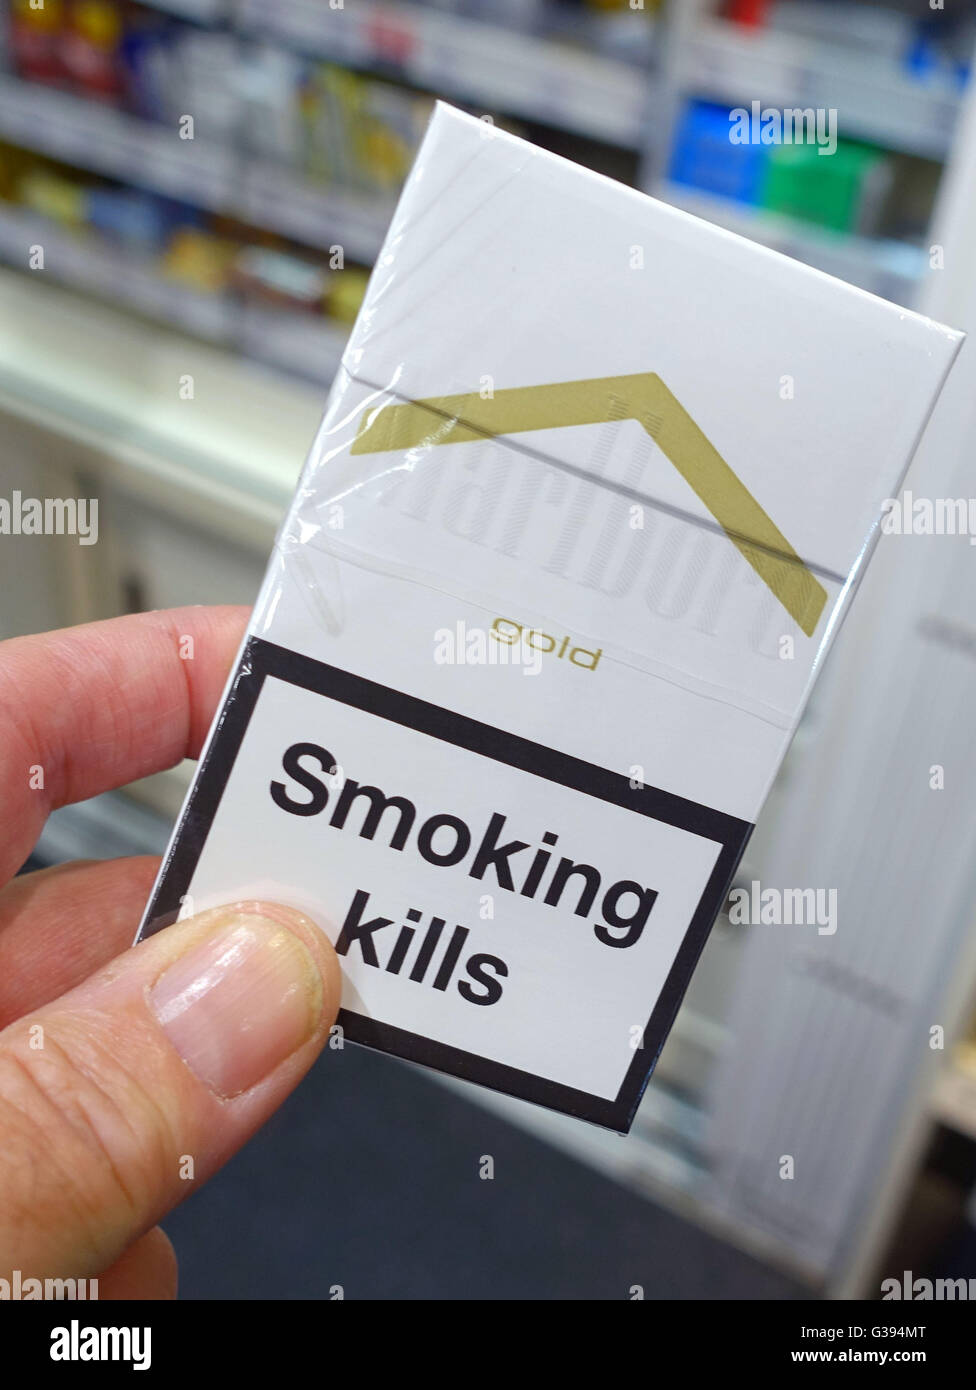 Cigarette packets without branding are being introduced, London - Stock Image